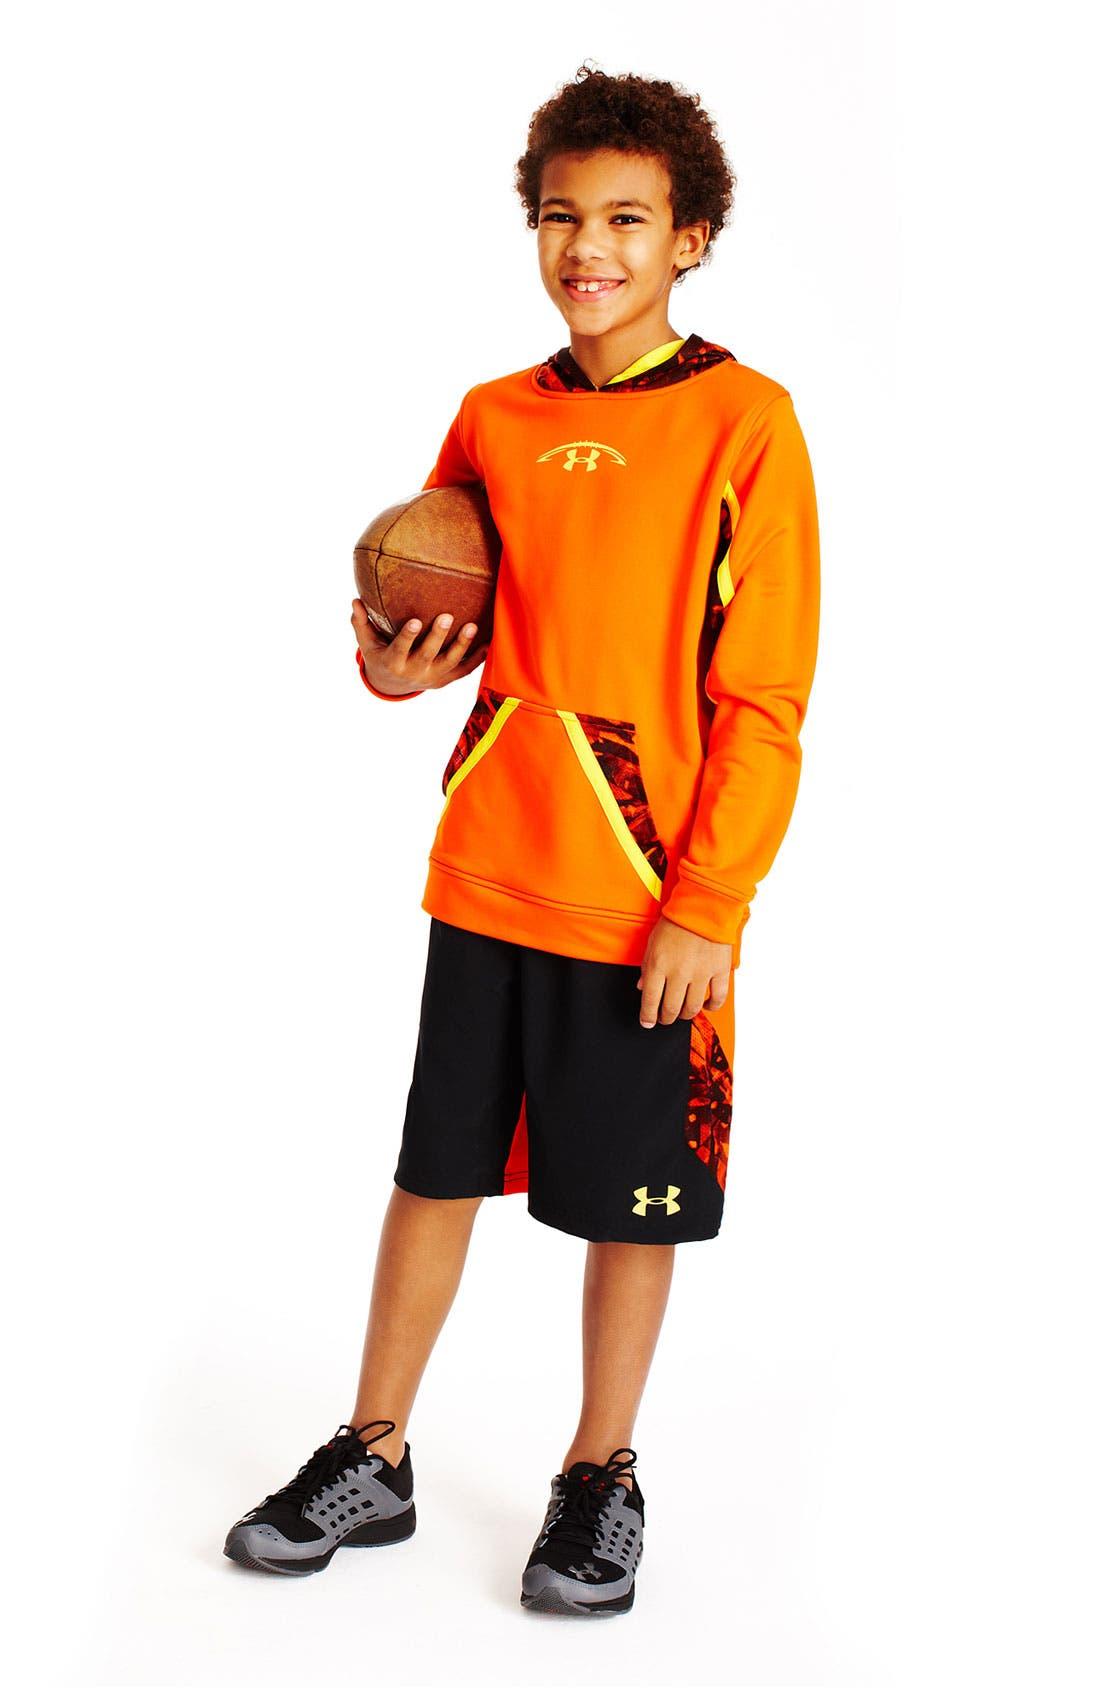 Main Image - Under Armour Hoodie & Shorts